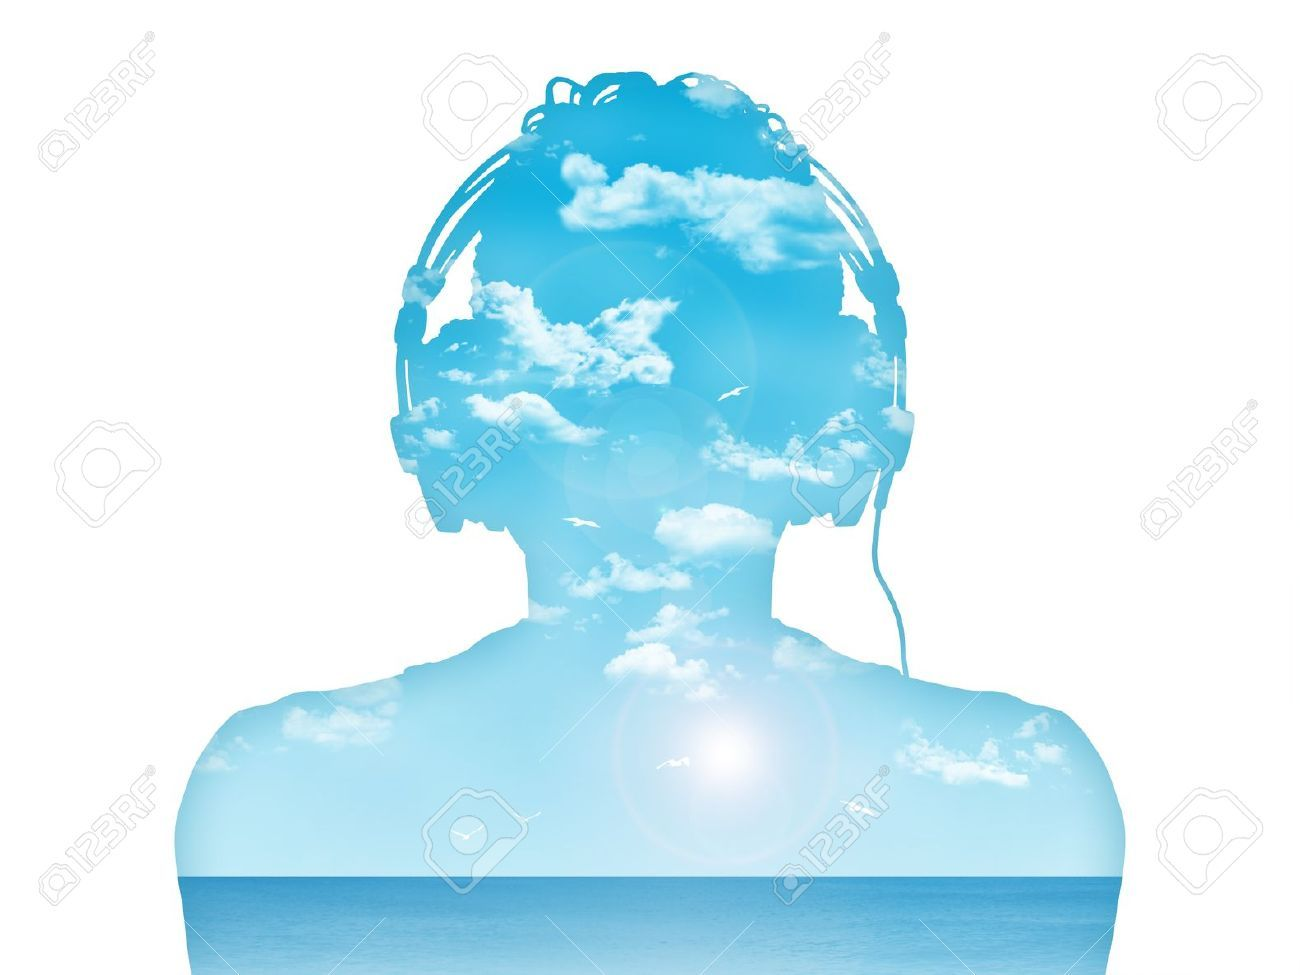 silhouette of headphones - Google Search